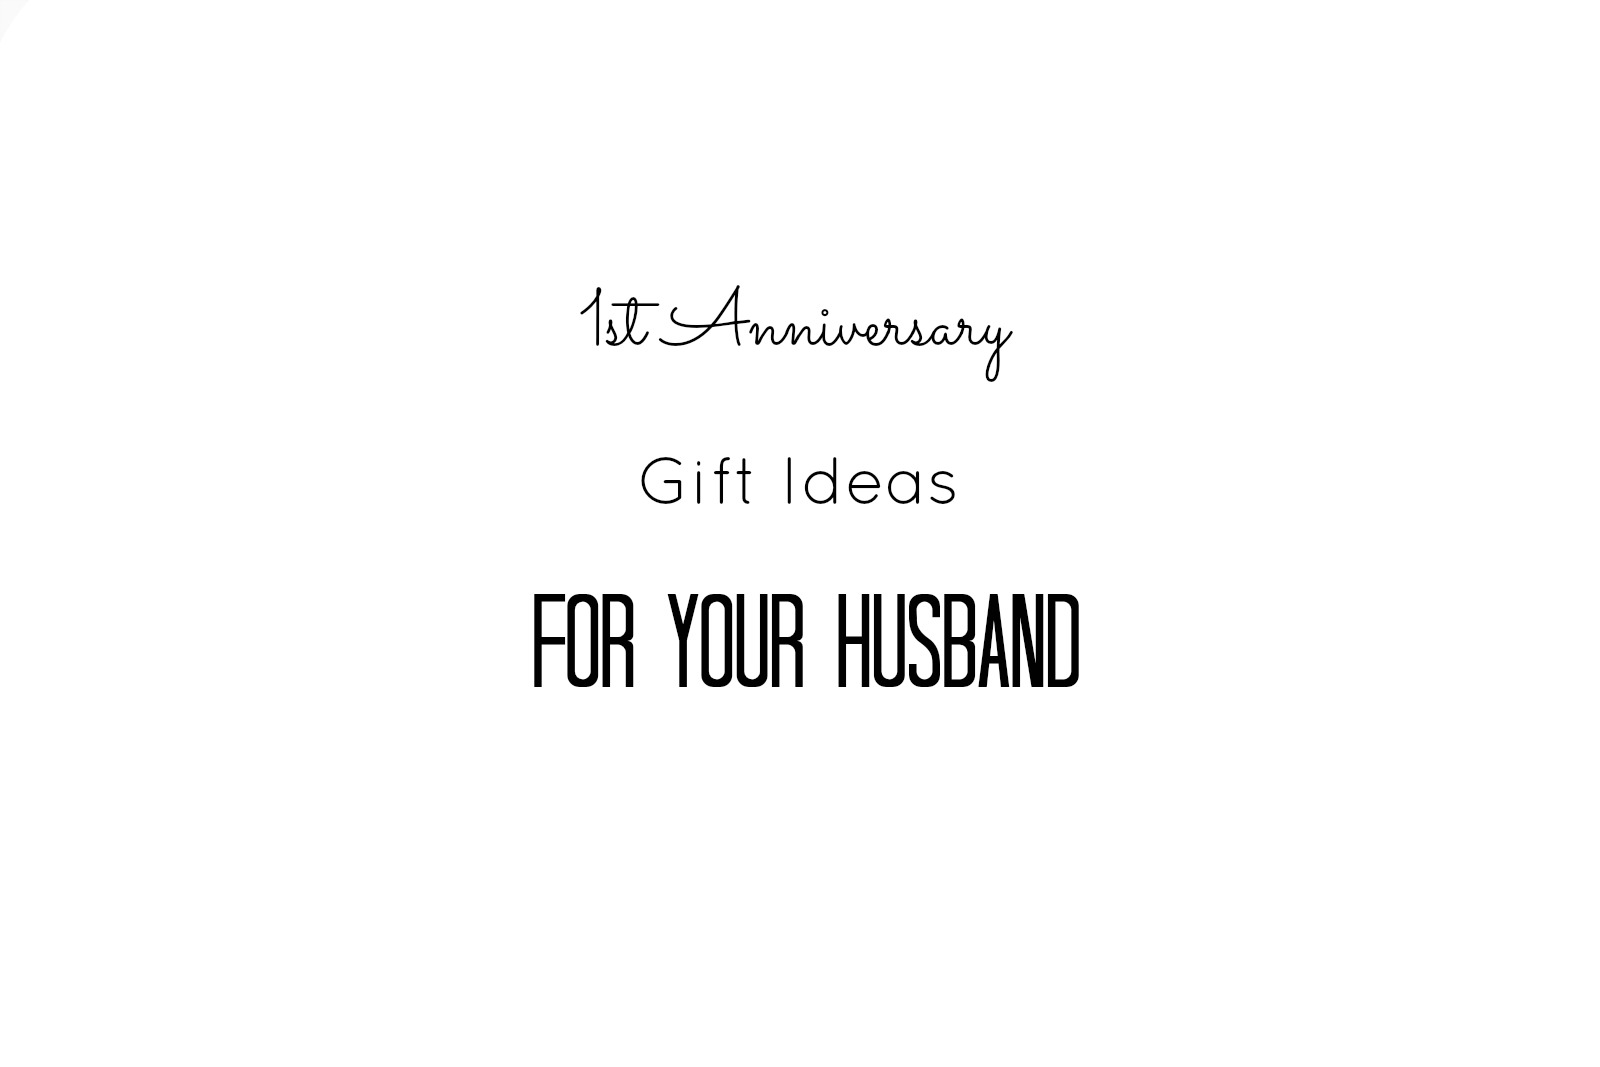 1st anniversary gift ideas for your husband runway chef